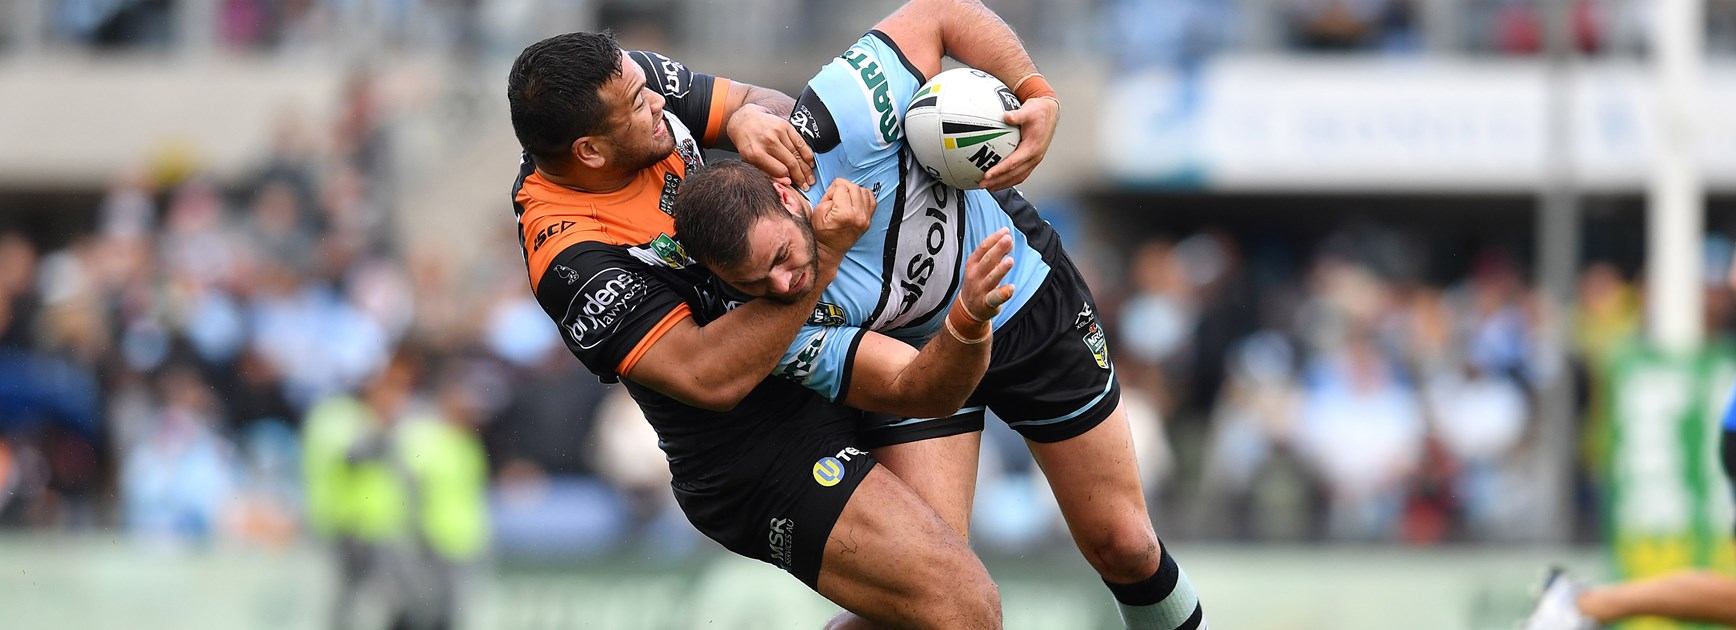 Wests Tigers fall to Sharks in tight tussle